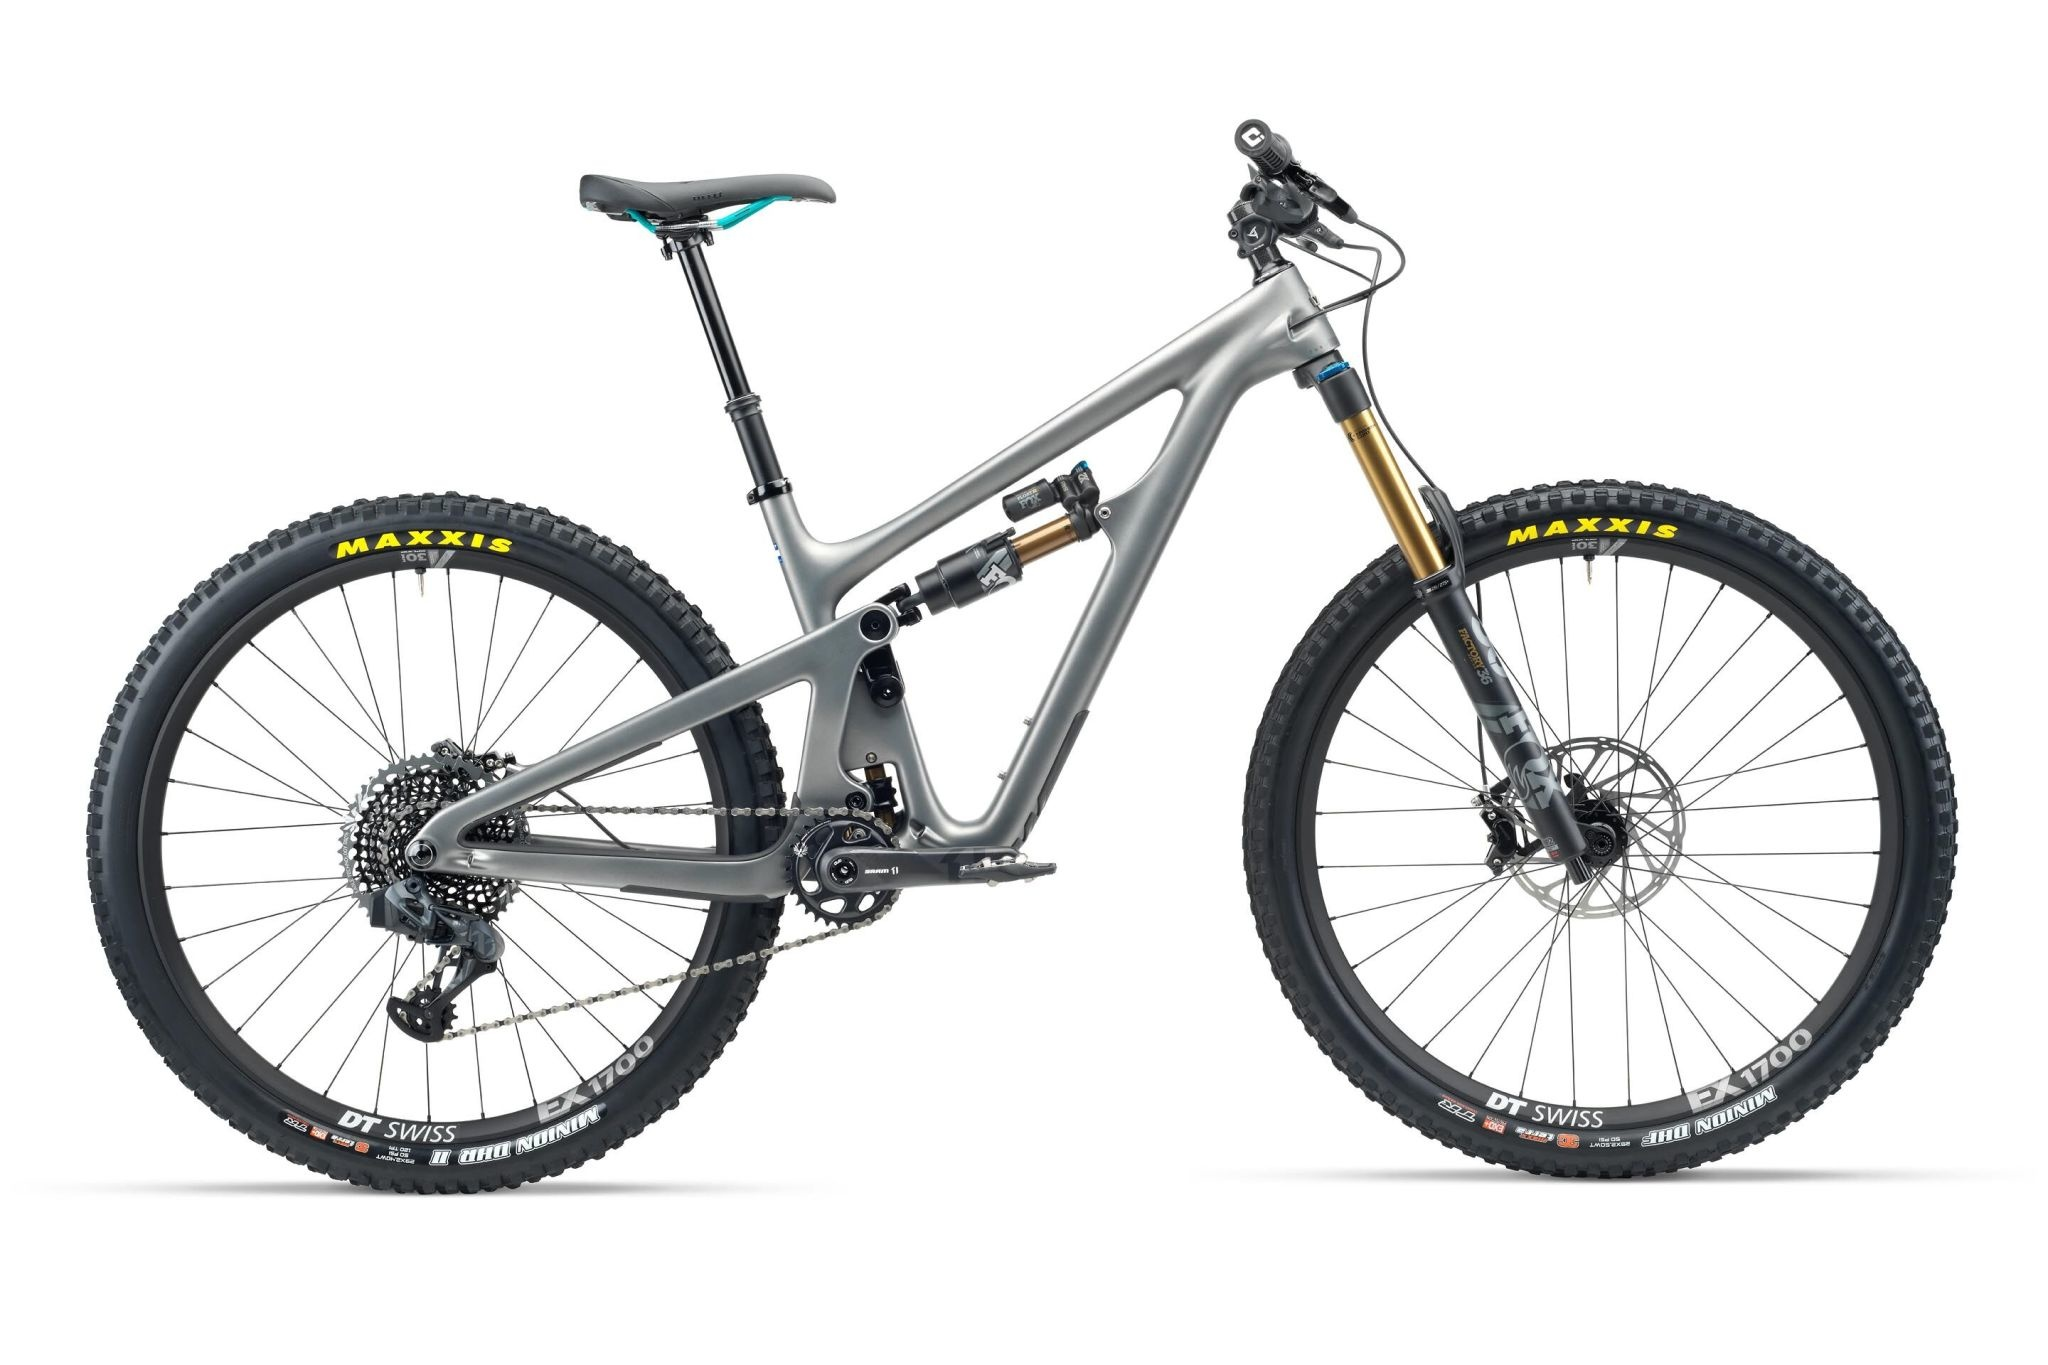 Yeti Cycles 20 Yeti SB150 T-series w/ T2 kit